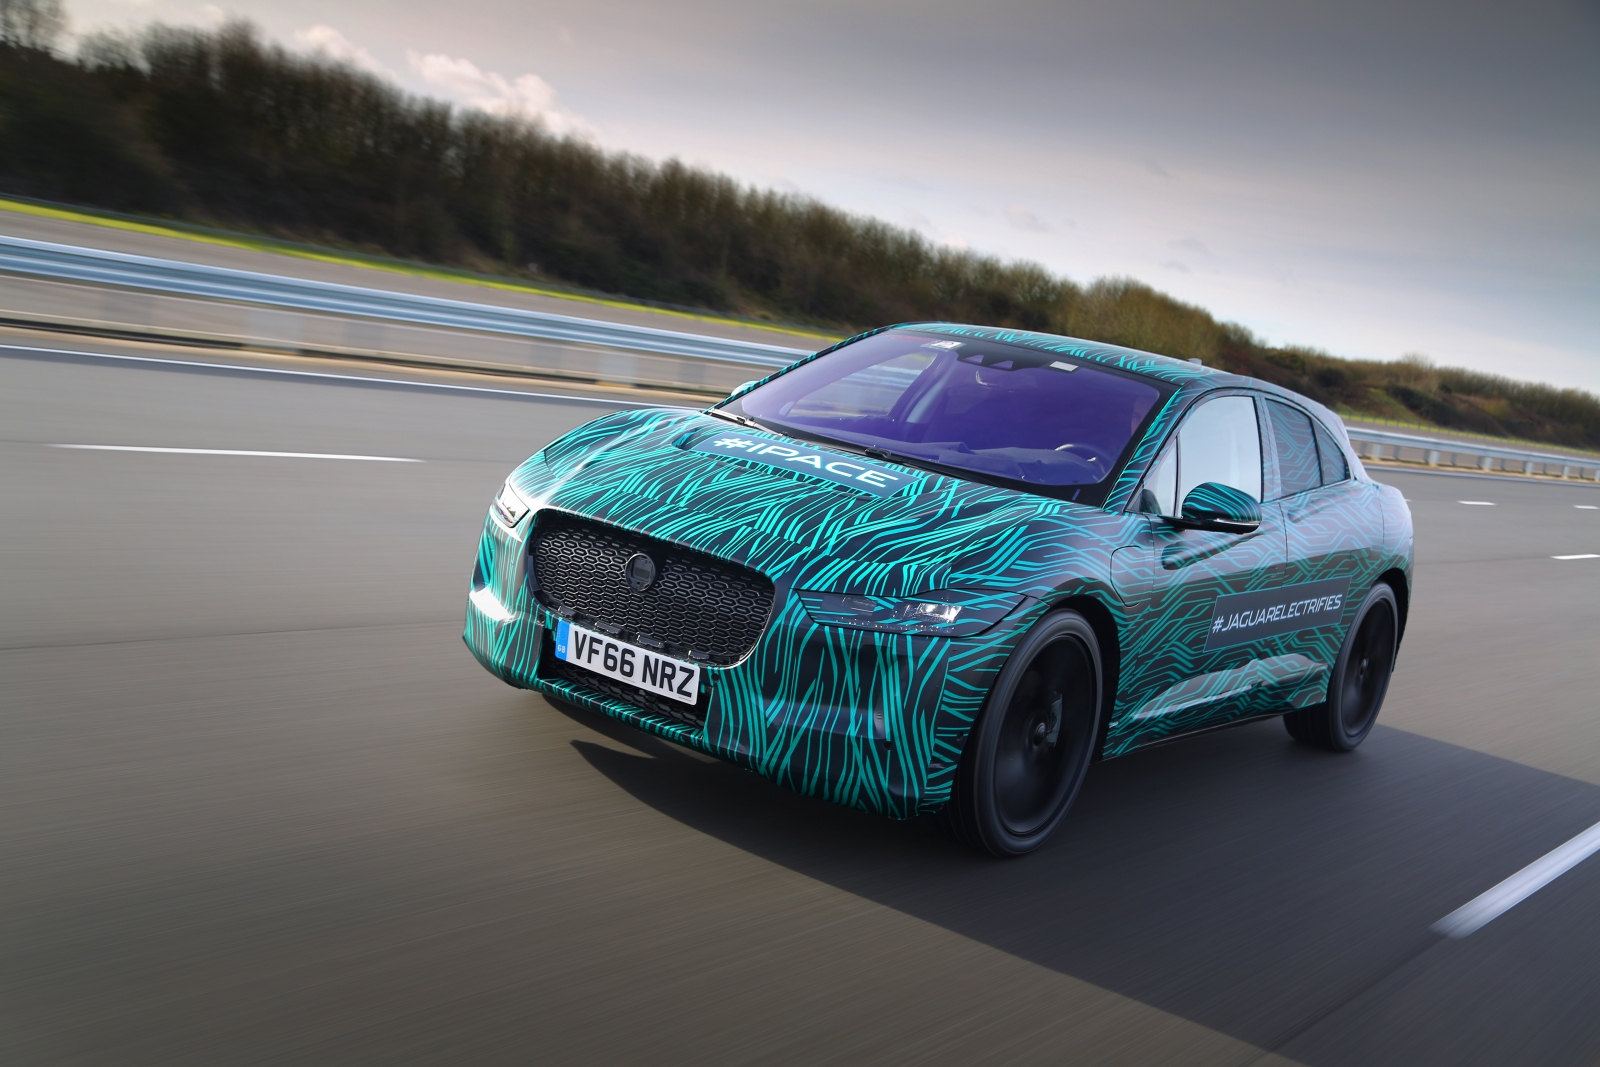 Jaguar's first electric vehicle hits London's roads - meet the I-PACE